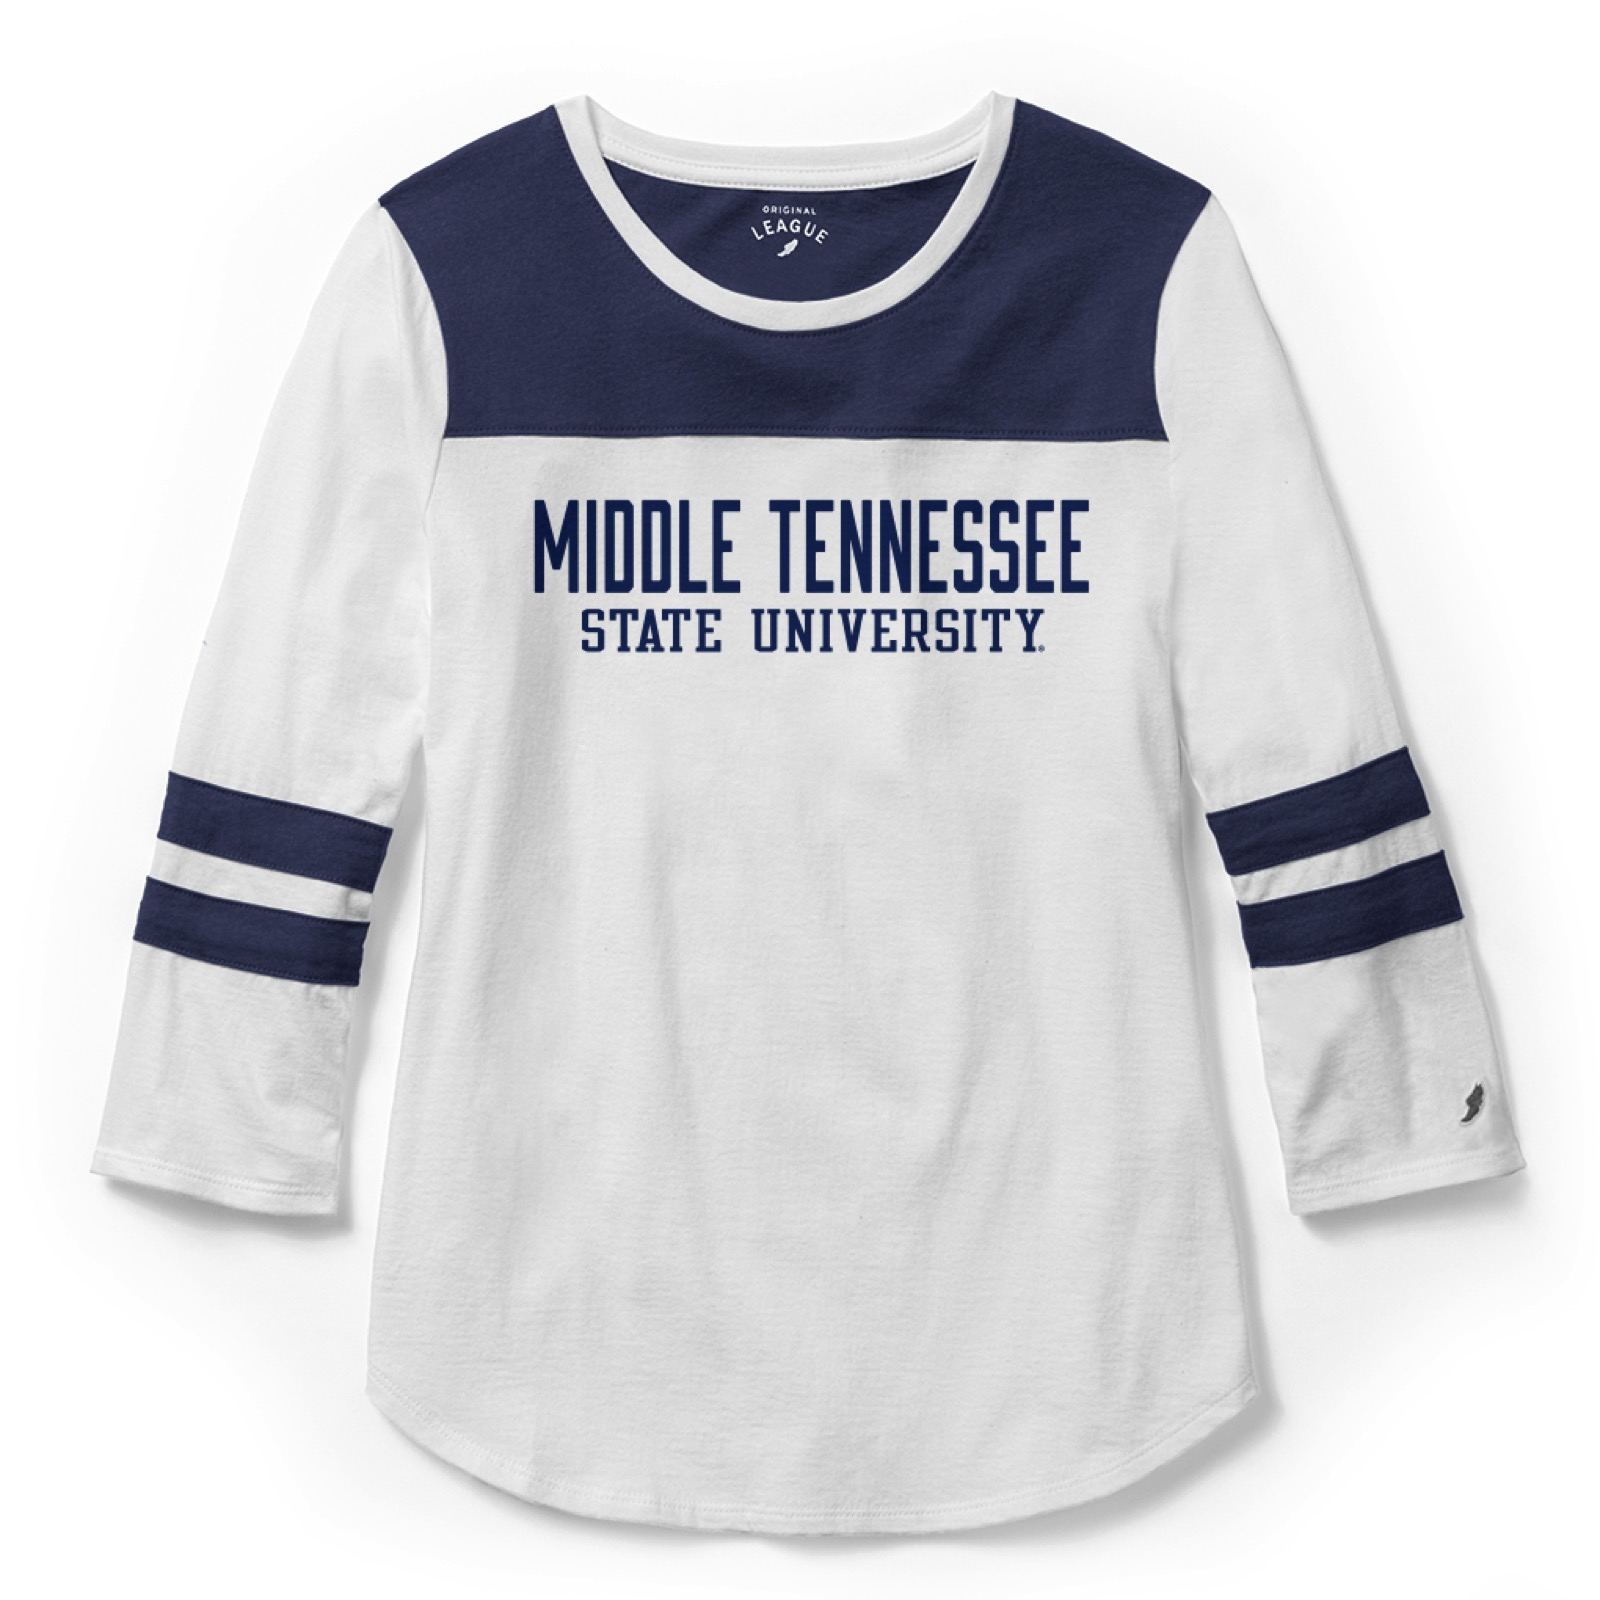 Middle Tennessee State University Women's Playoff Shirt